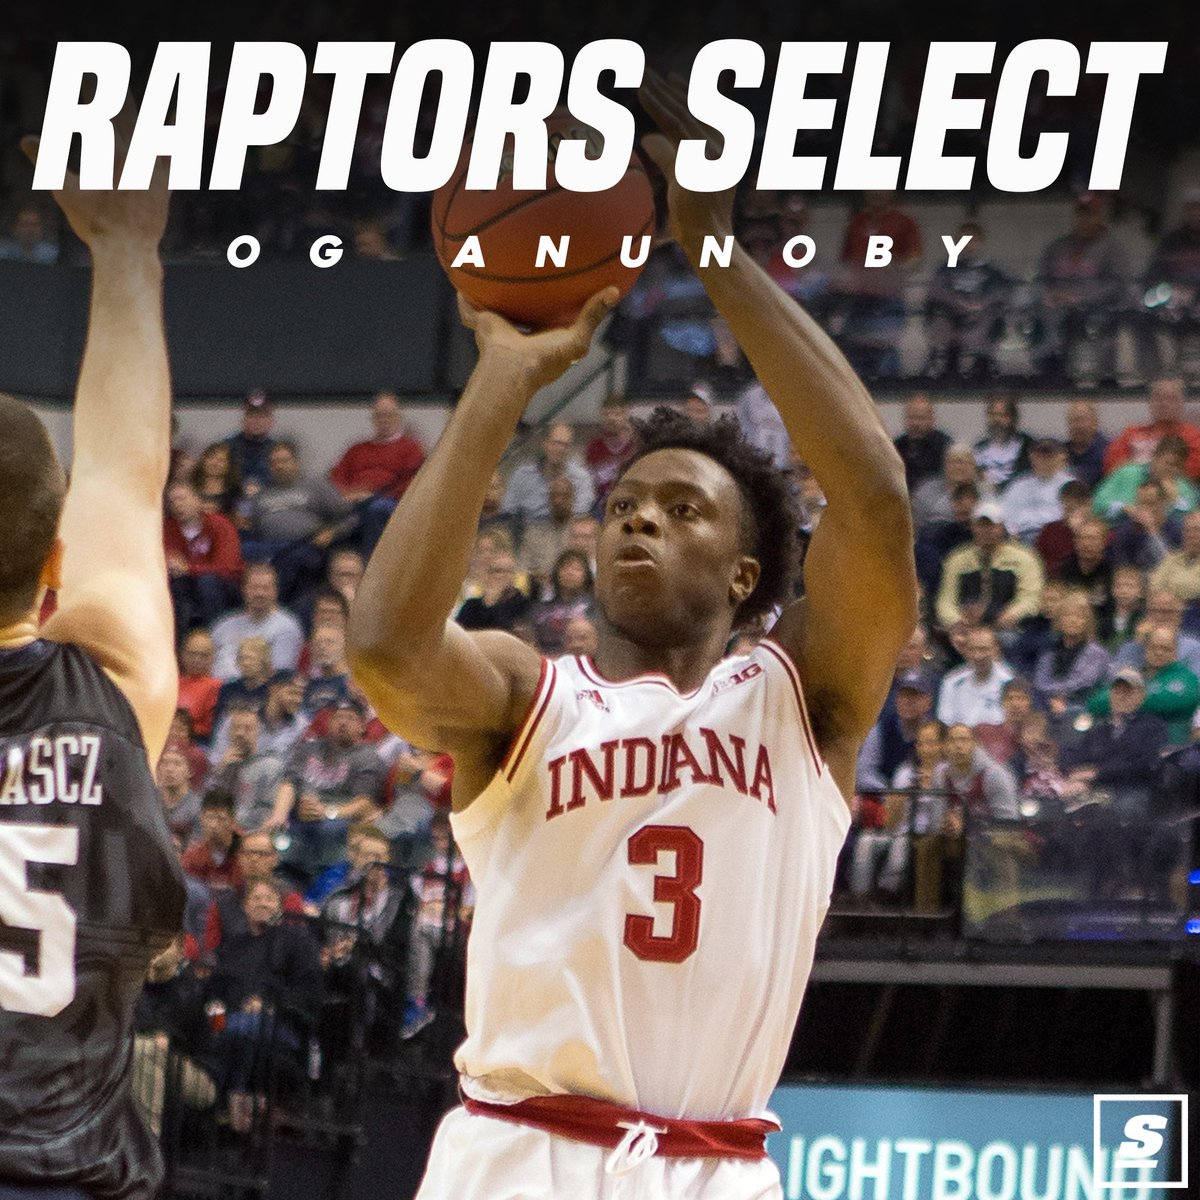 Raptors select OG Anunoby 23rd overall in the NBA Draft. https://t.co/...